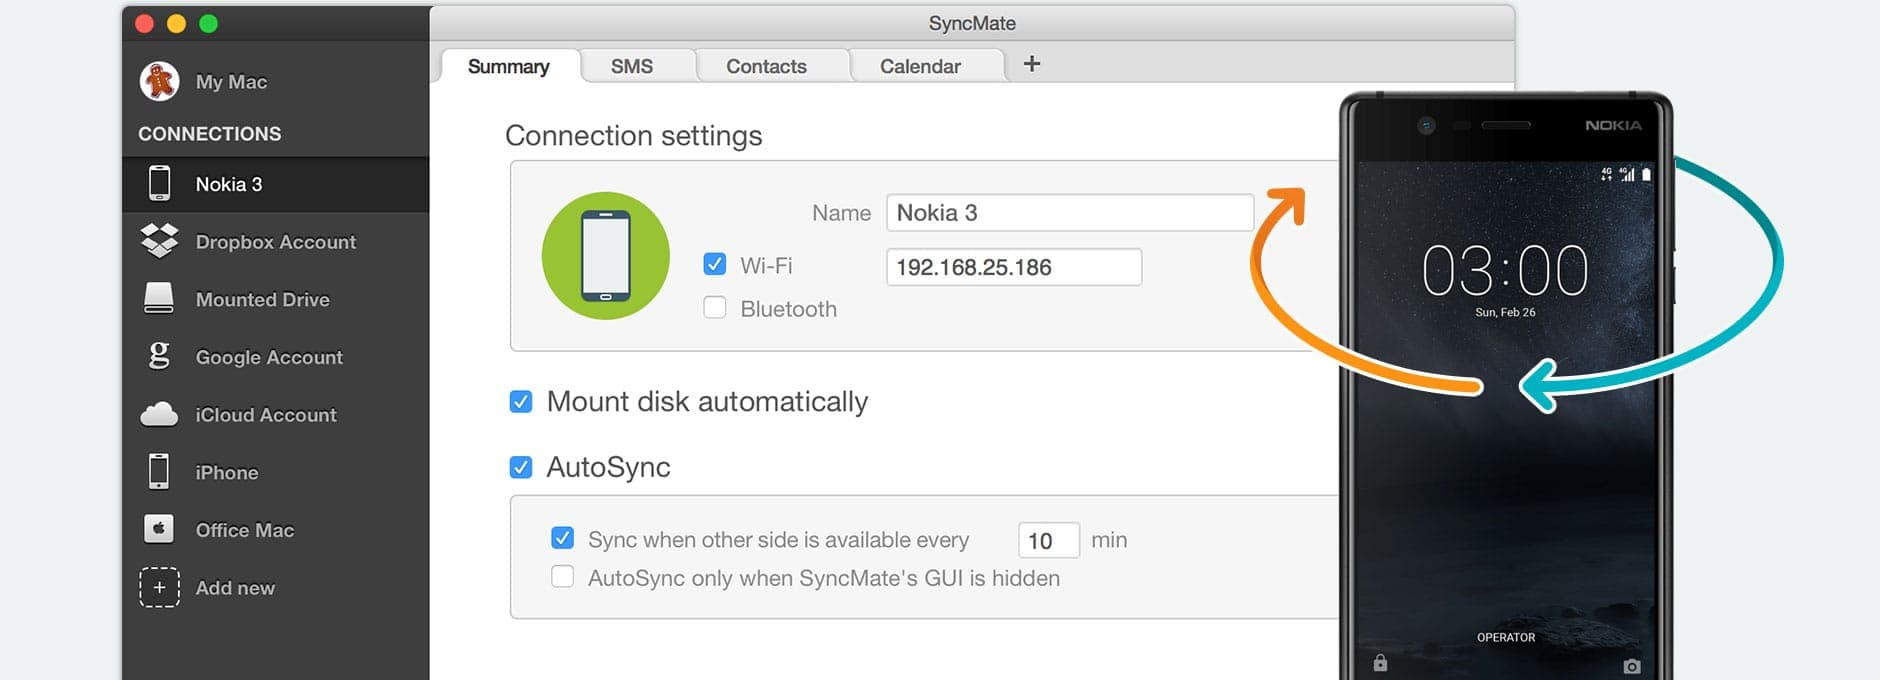 Synchronize Android Nokia with Mac for free